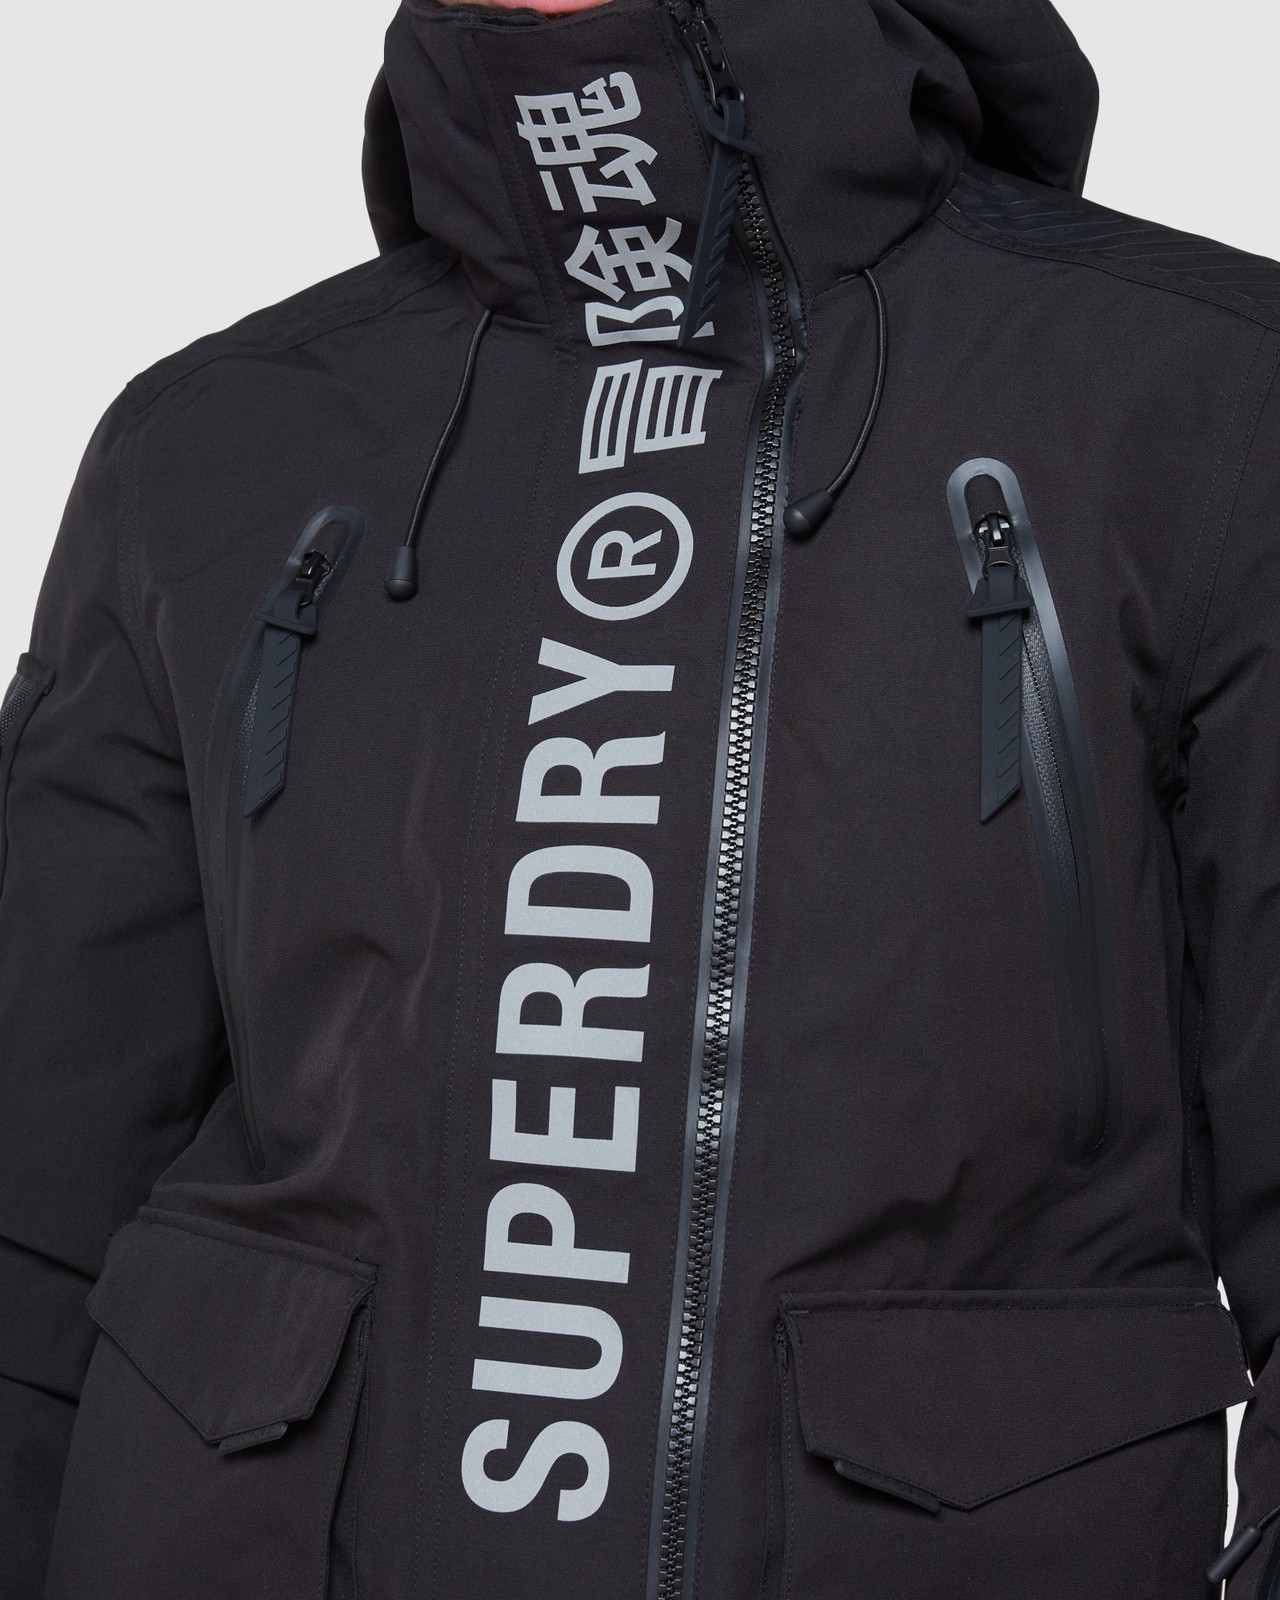 Superdry Mens ULTIMATE MOUNTAIN RESCUE JKT Black Snow Jackets 7